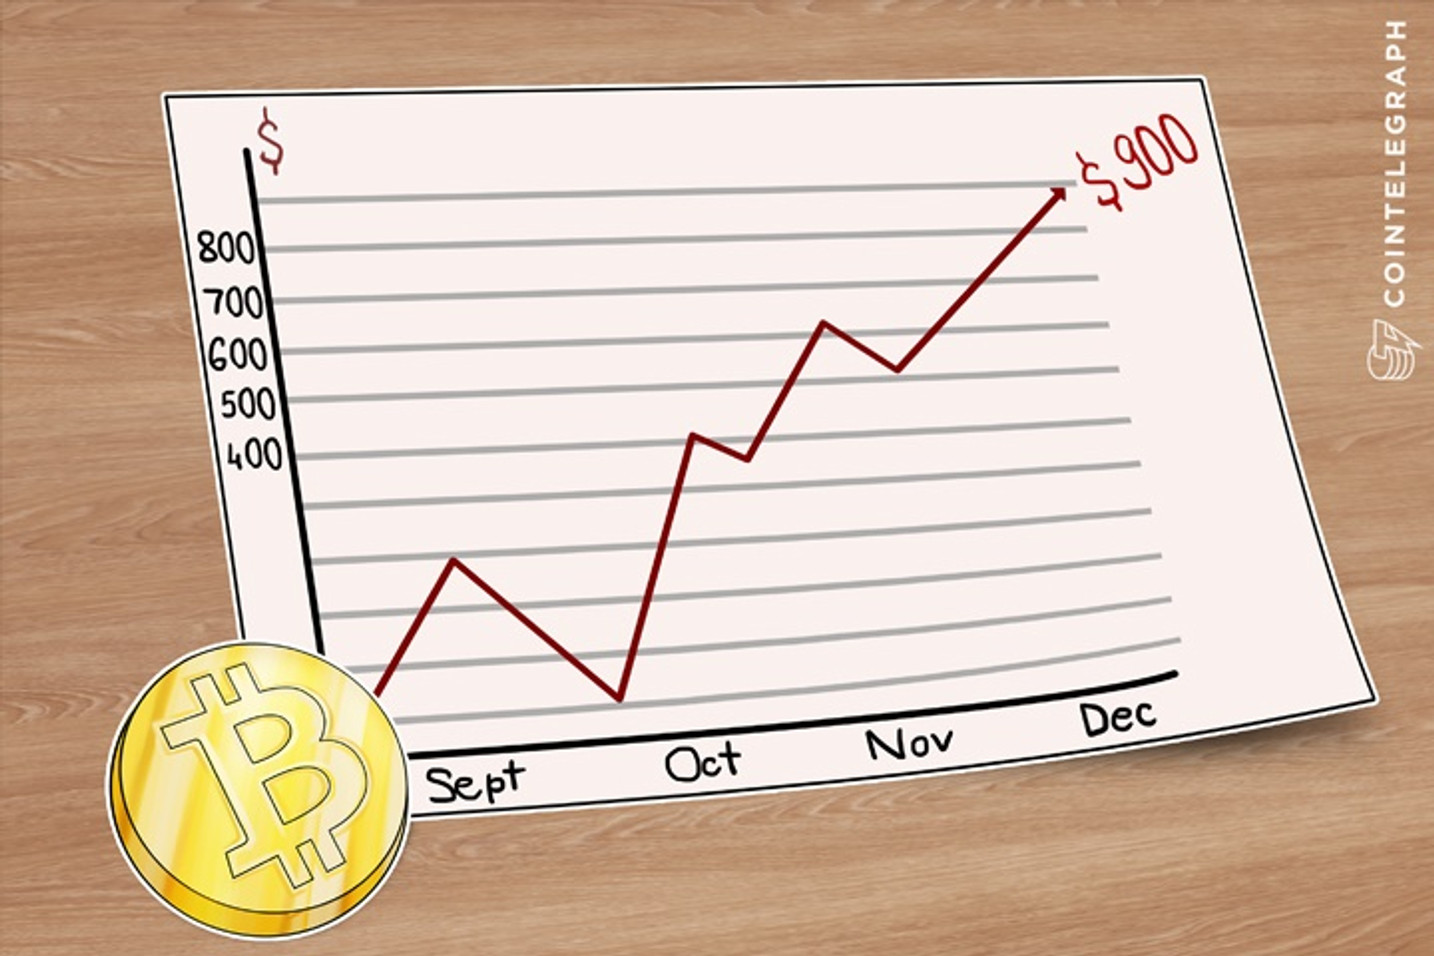 Bitcoin Price Goes Past $900 As Vinny Lingham Predicted